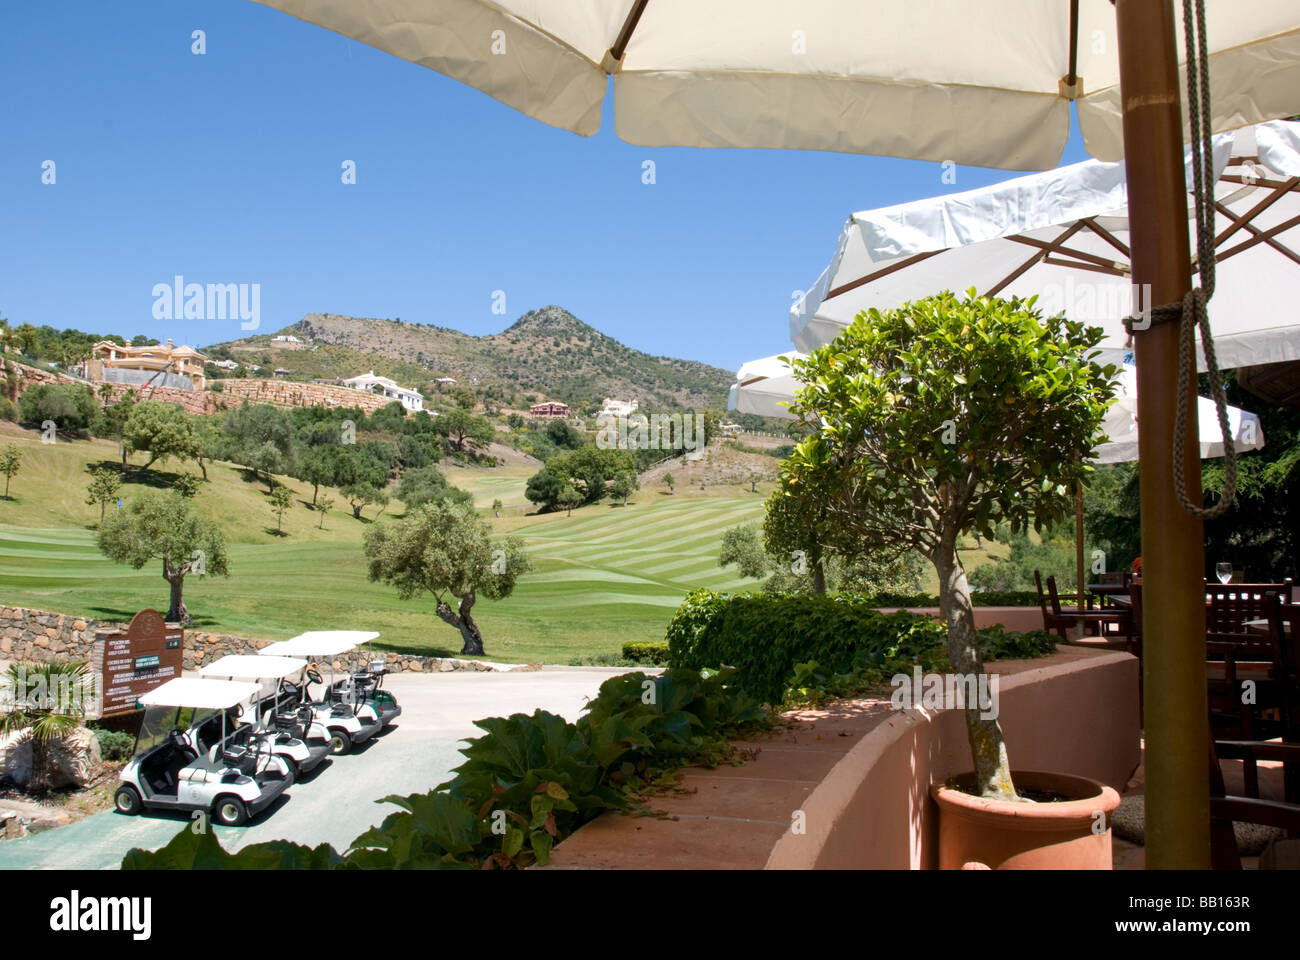 Spanish golf club and clubhouse, Marbella - Stock Image